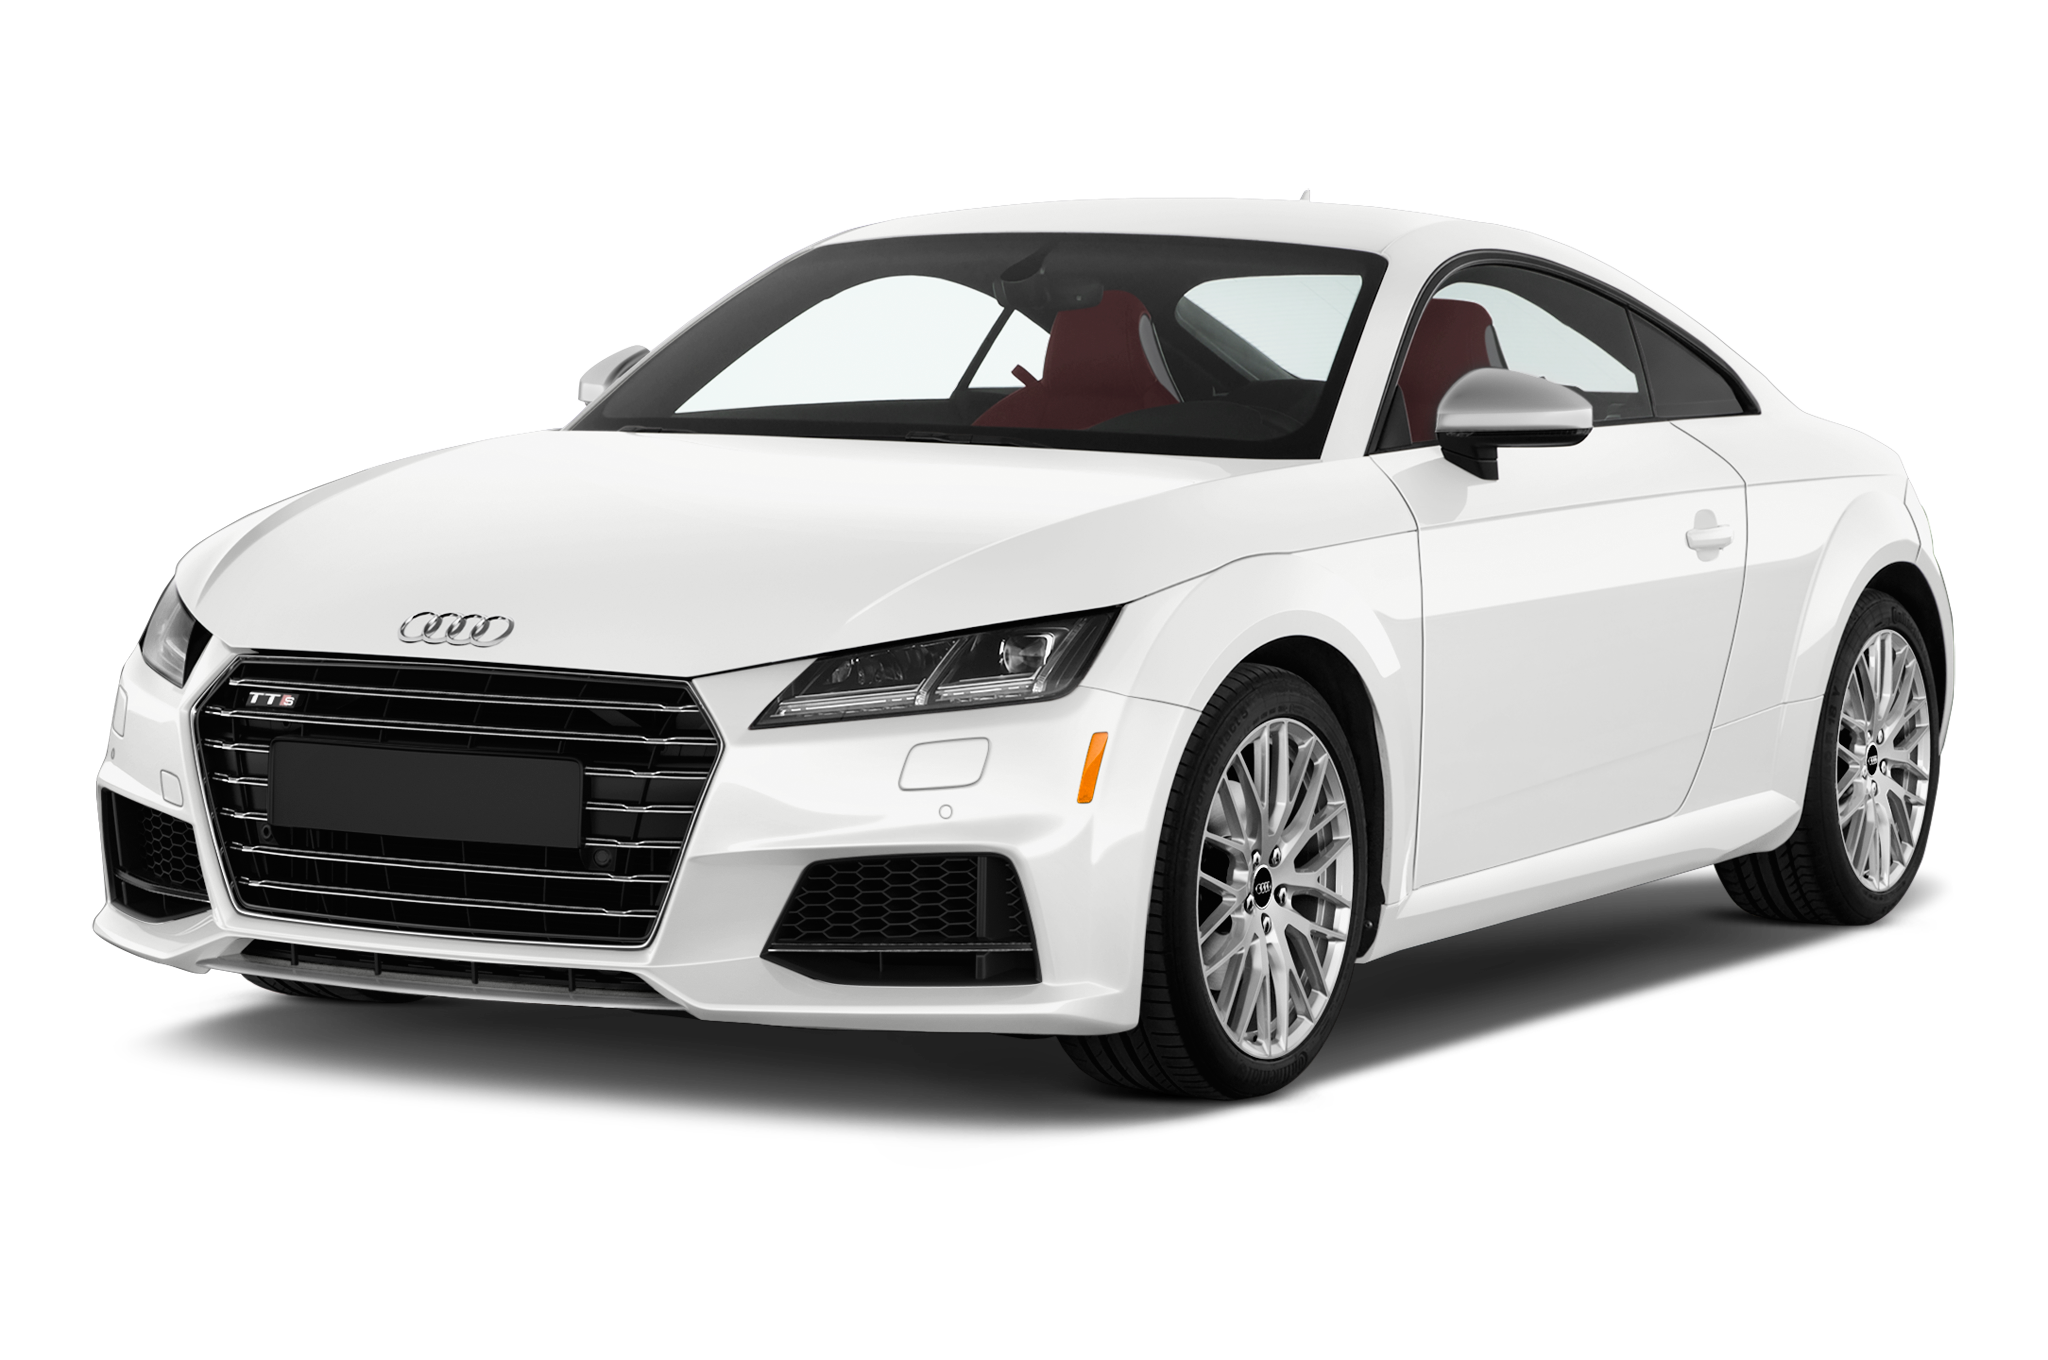 Deep Dive: The 2018 Audi A3 Adds More Body Styles